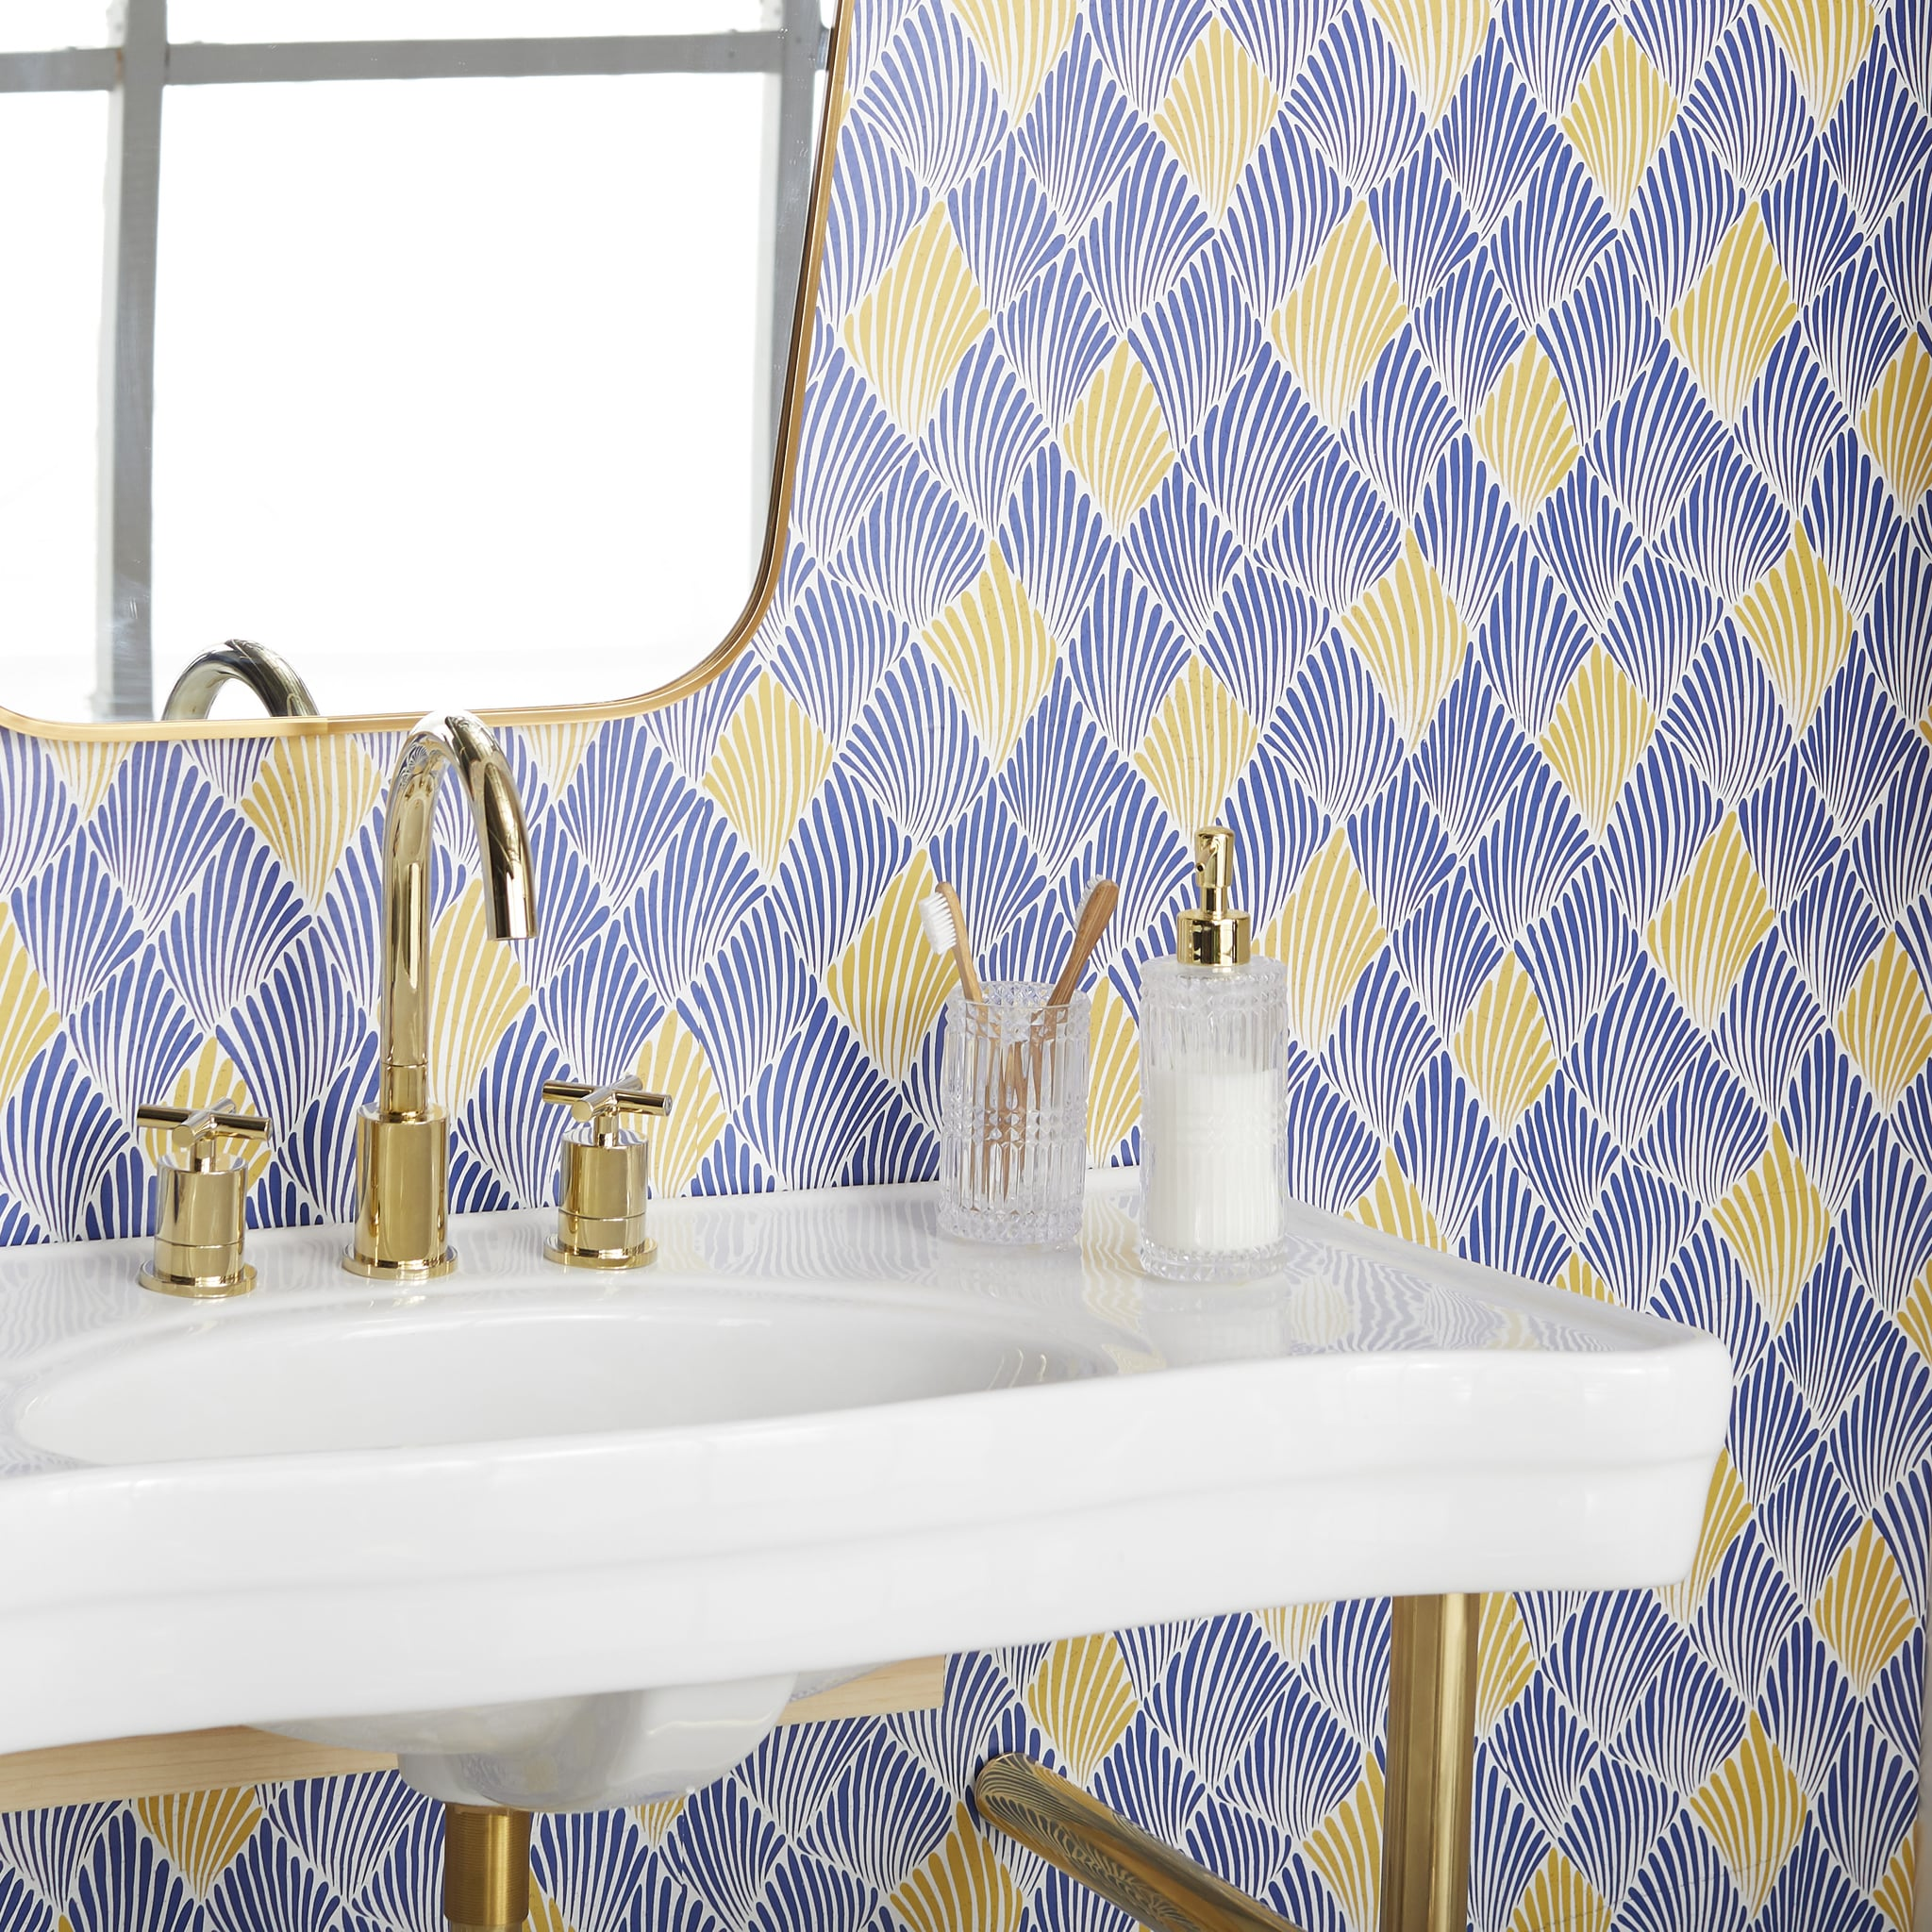 Drew Barrymore S Home Line Has Cute Peel And Stick Wallpaper Popsugar Home